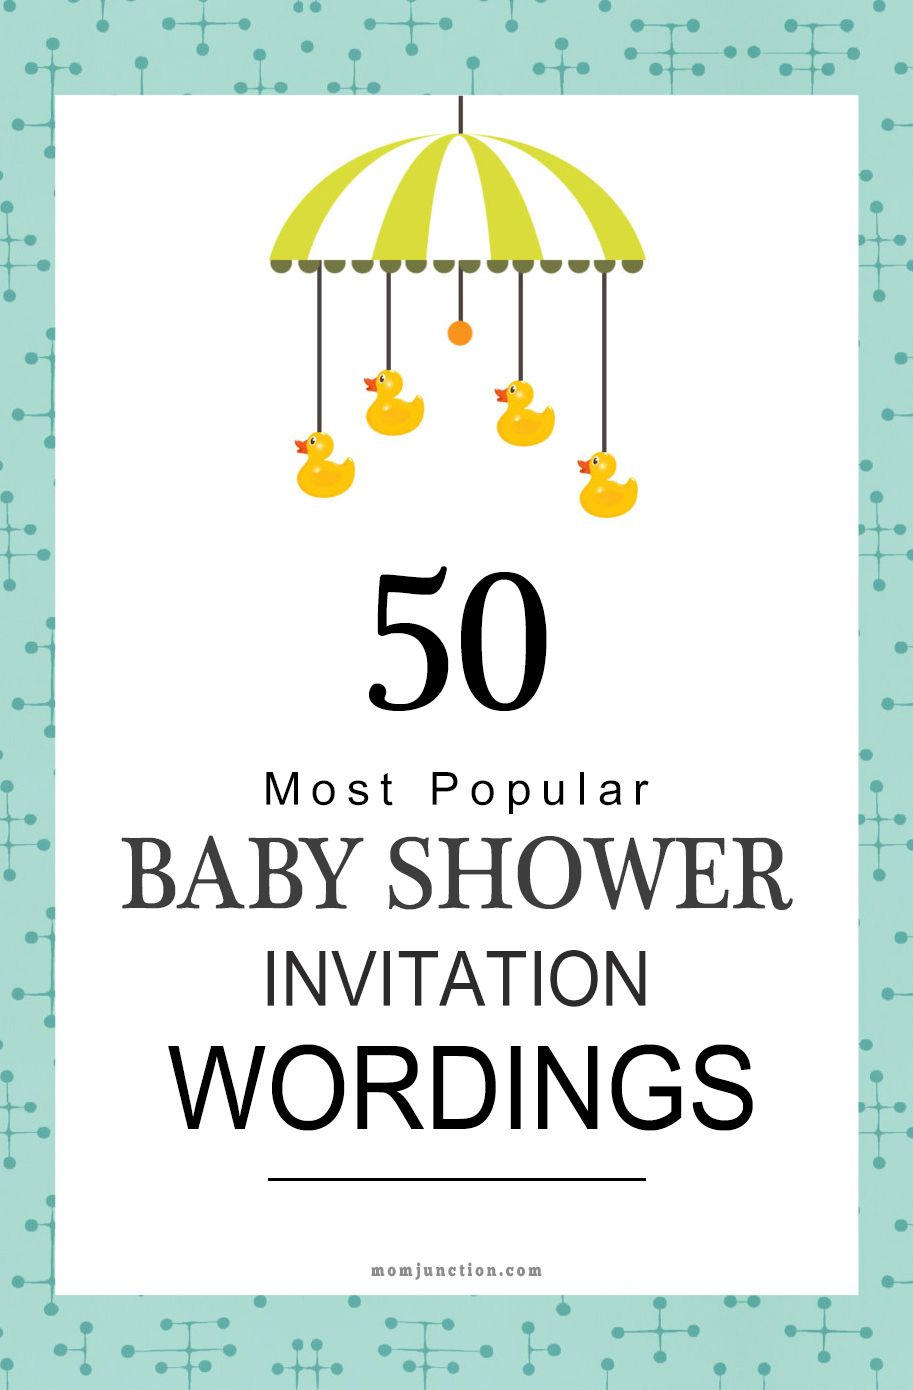 75 most popular baby shower invitation wordings pinterest 50 most popular baby shower invitation wordings momjunction will help you find the right words to create a memorable and fun invitation to welcome the baby filmwisefo